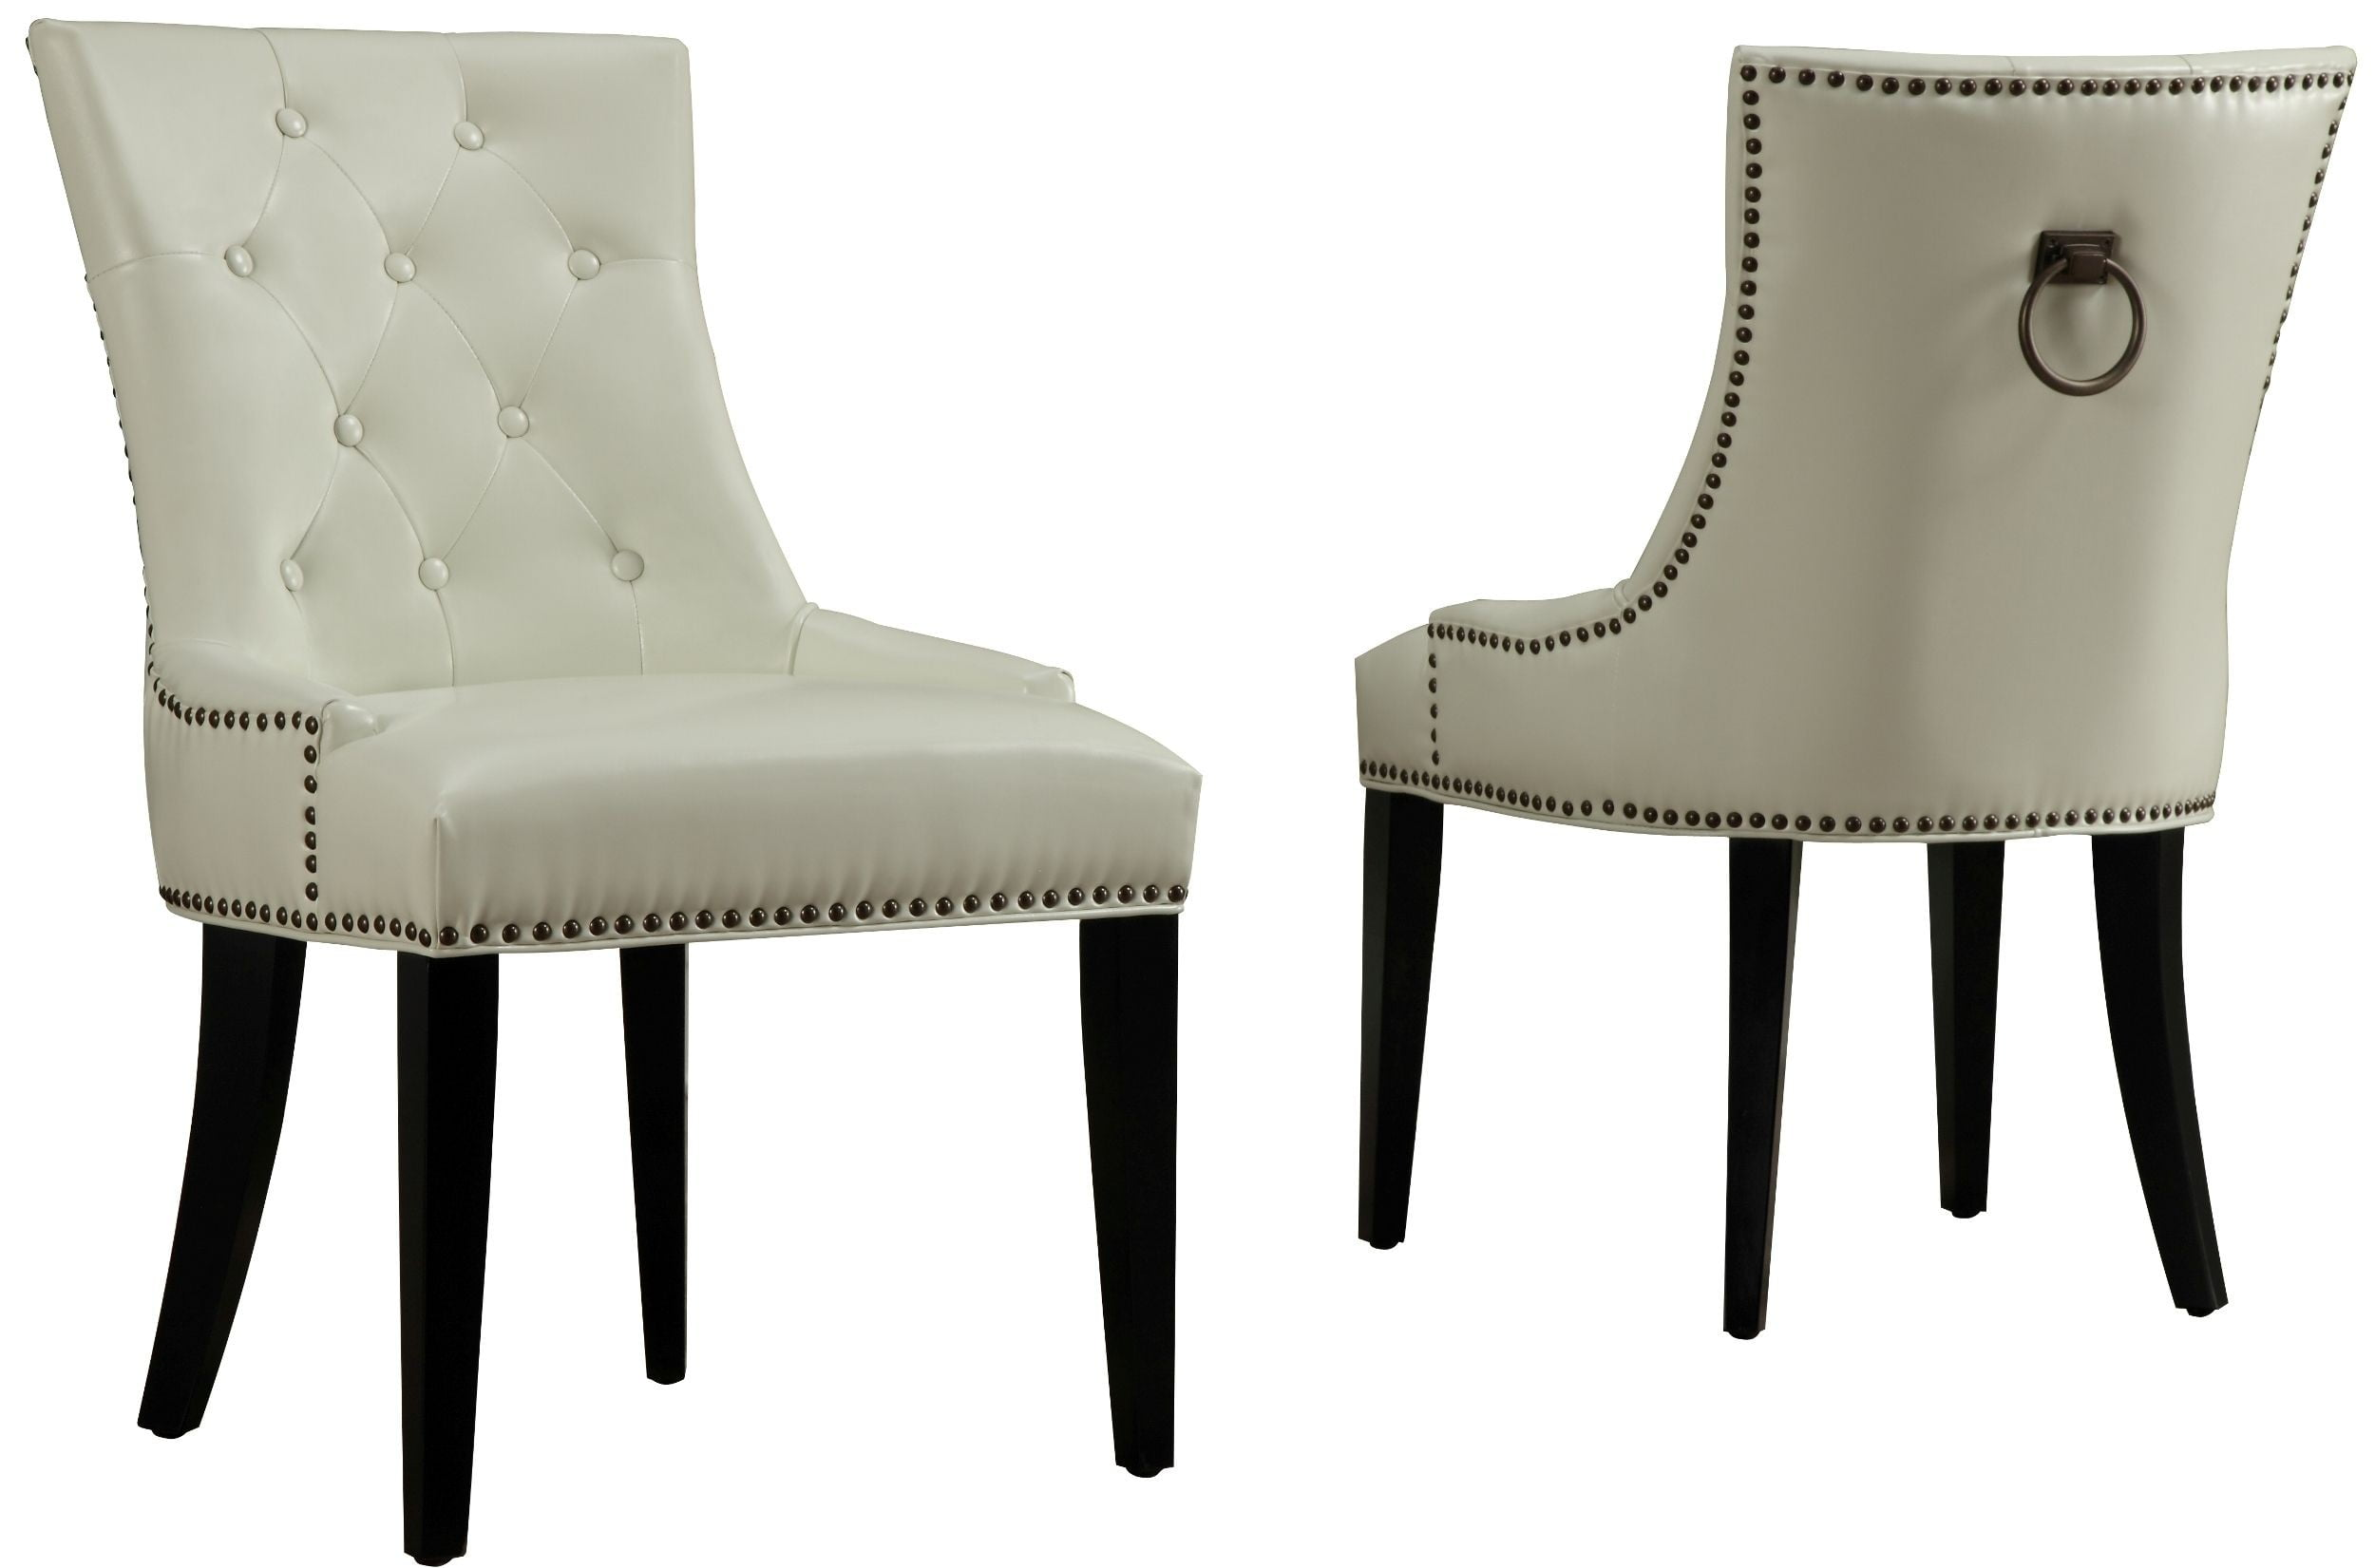 Dining Chairs With Handles On Back Parsons Chairs With Slipcovers Parsons Chair Slipcover